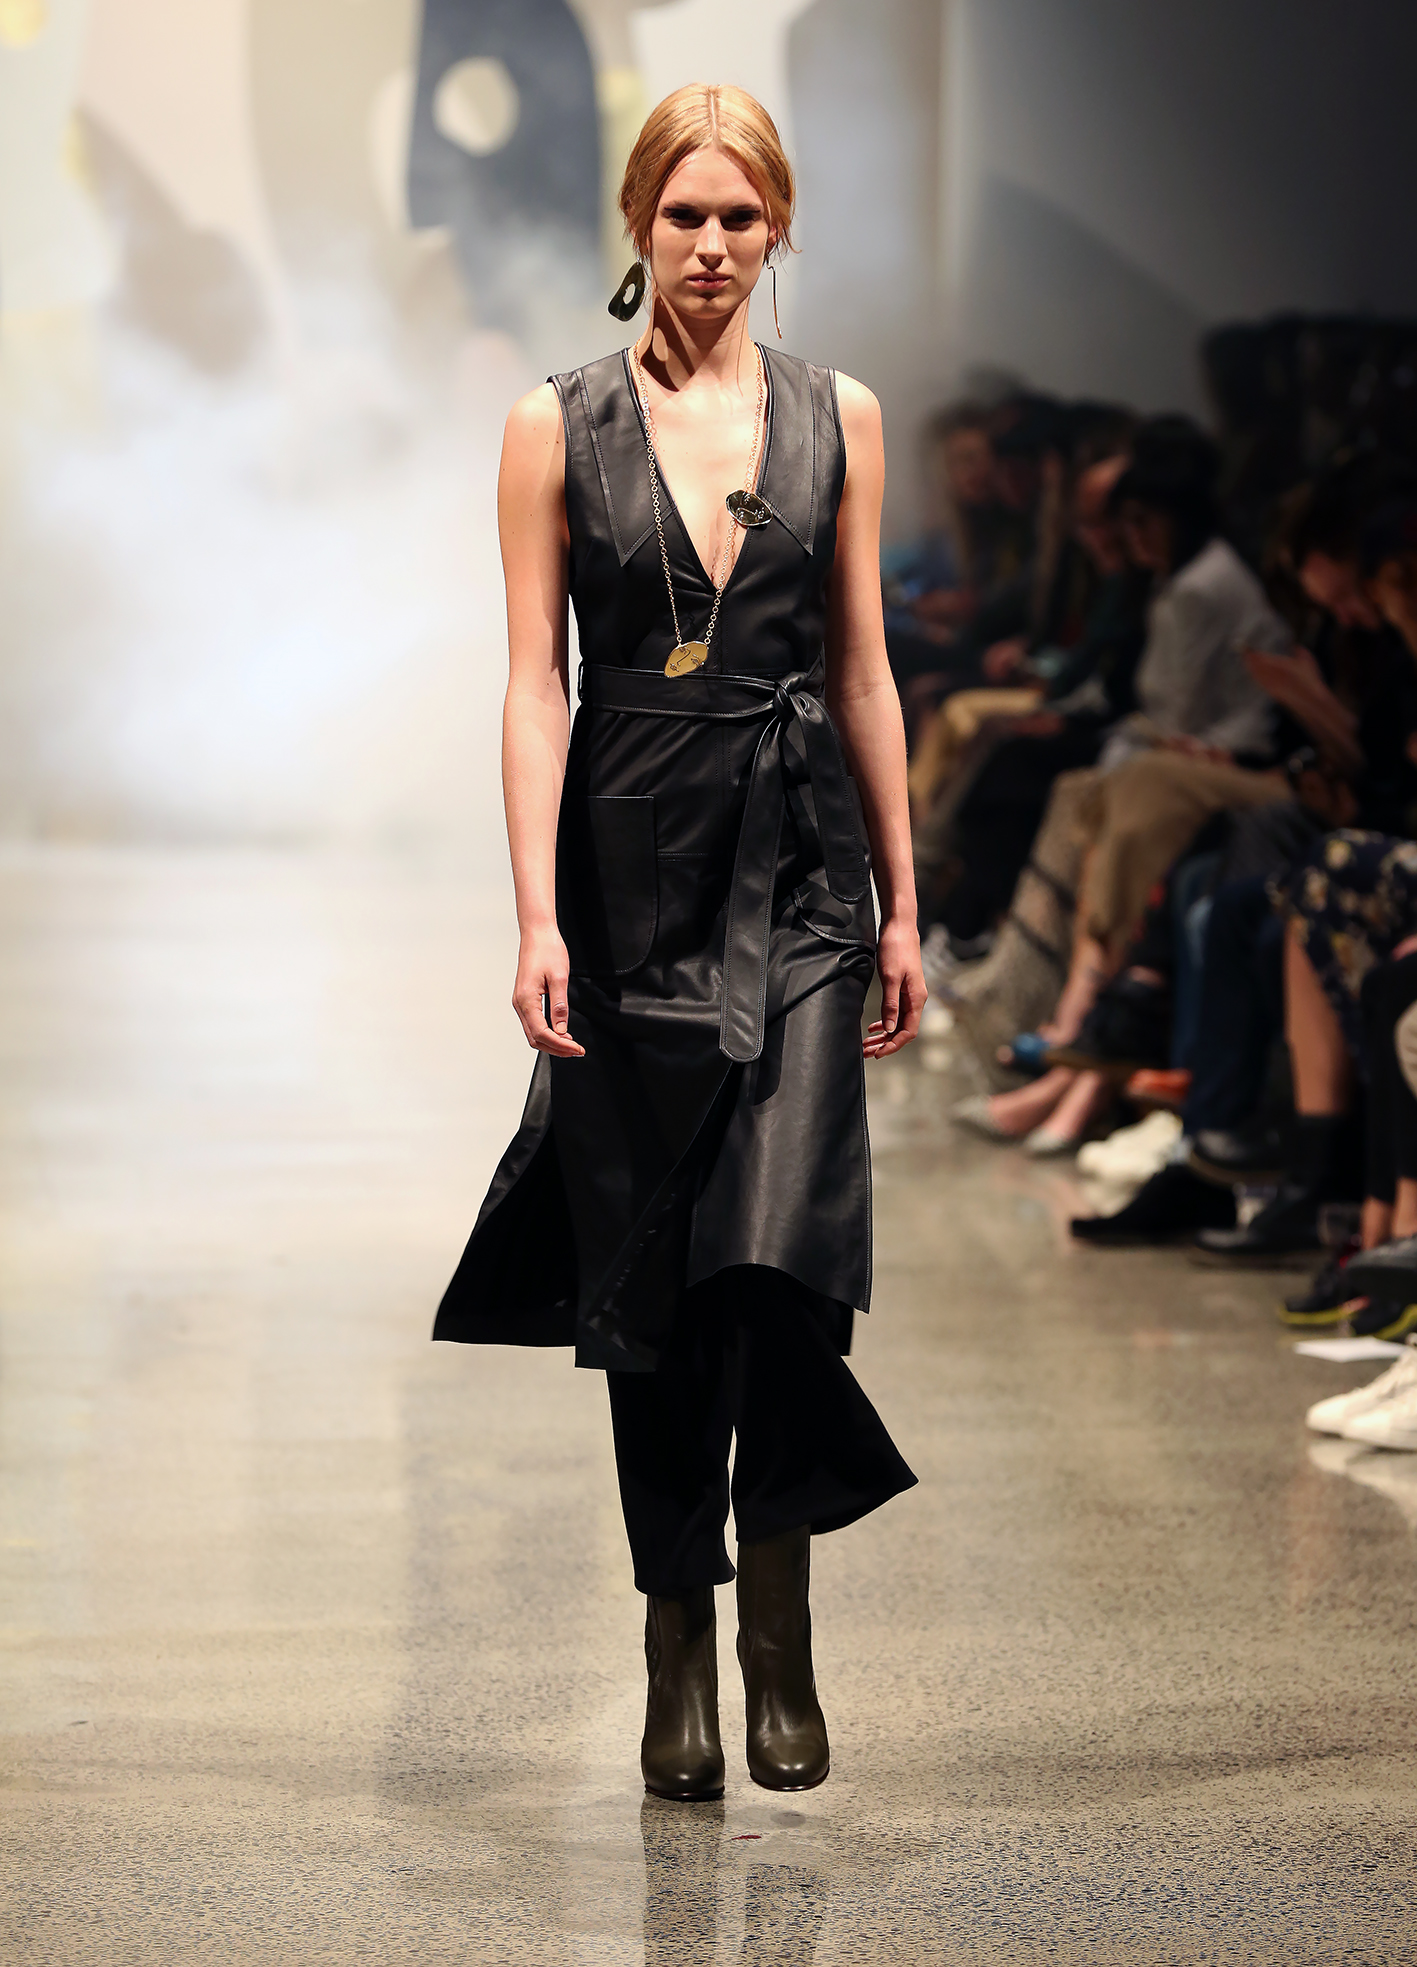 bc89bc2023a965 Streamlined layering at Kate Sylvester AW 16. (PHOTO: Diego Opatowski /  RNZ.)